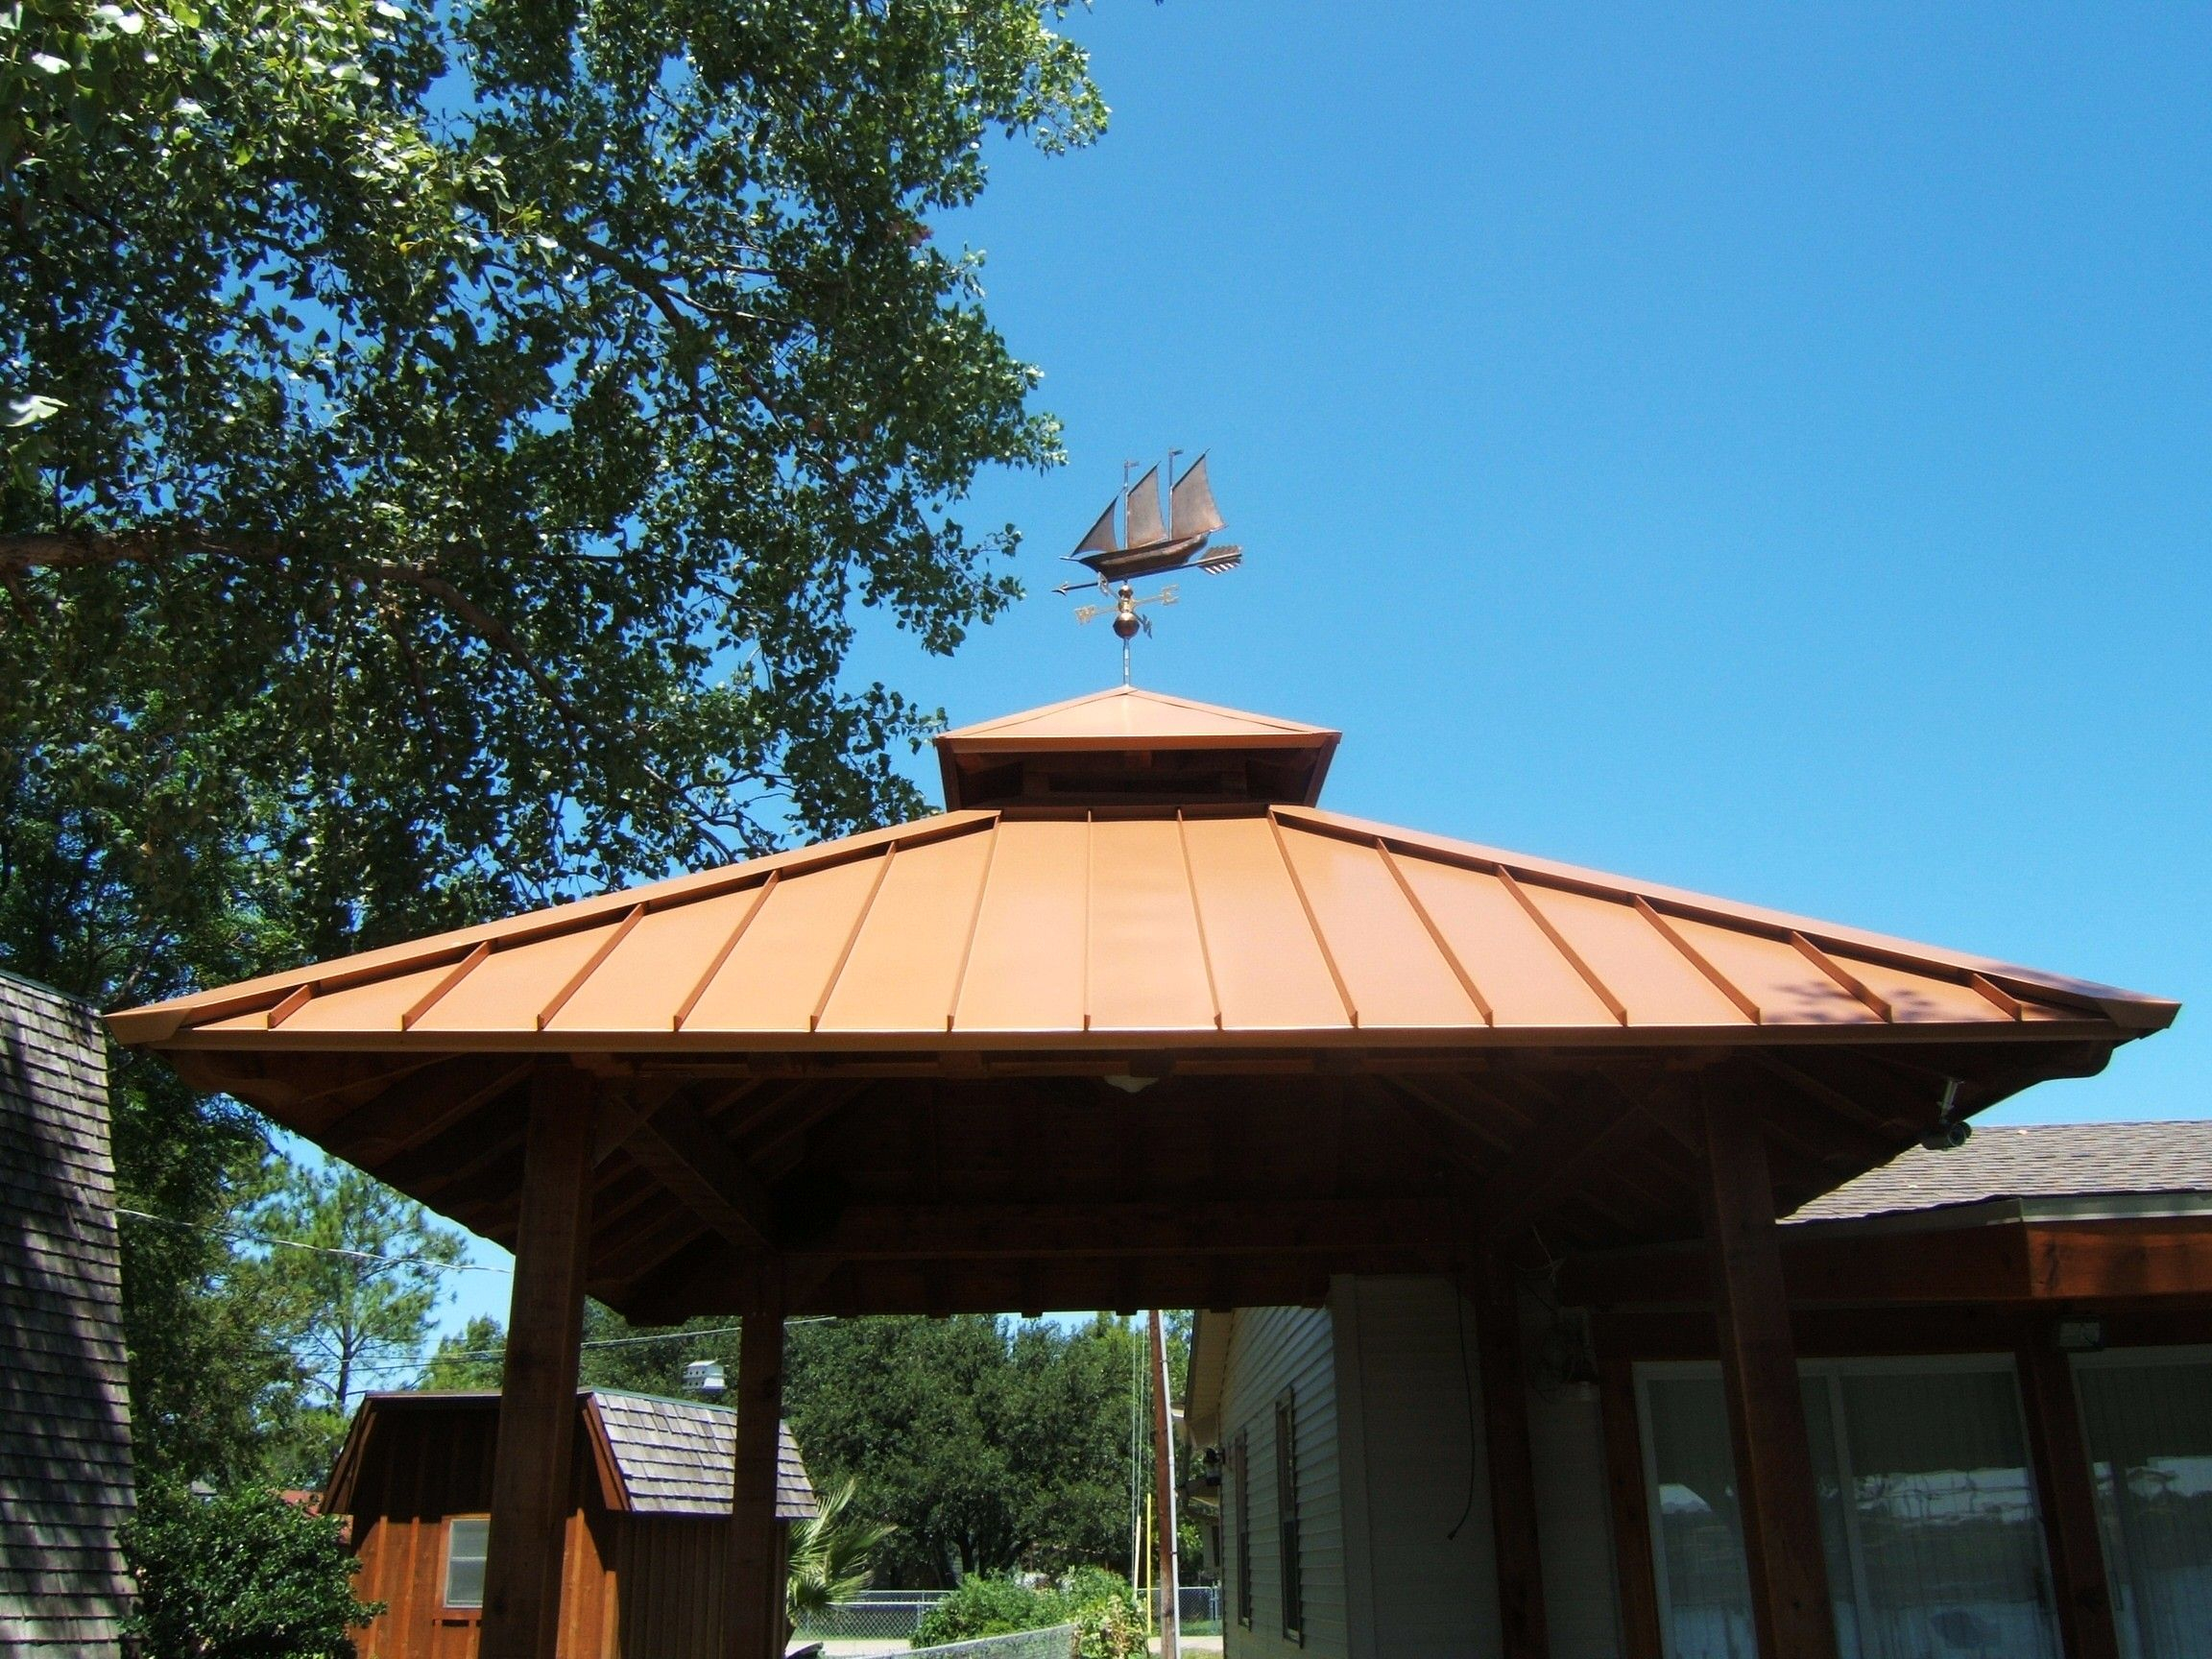 Copper Roofing For Patio Cover Carport Patio Backyard regarding sizing 2304 X 1728